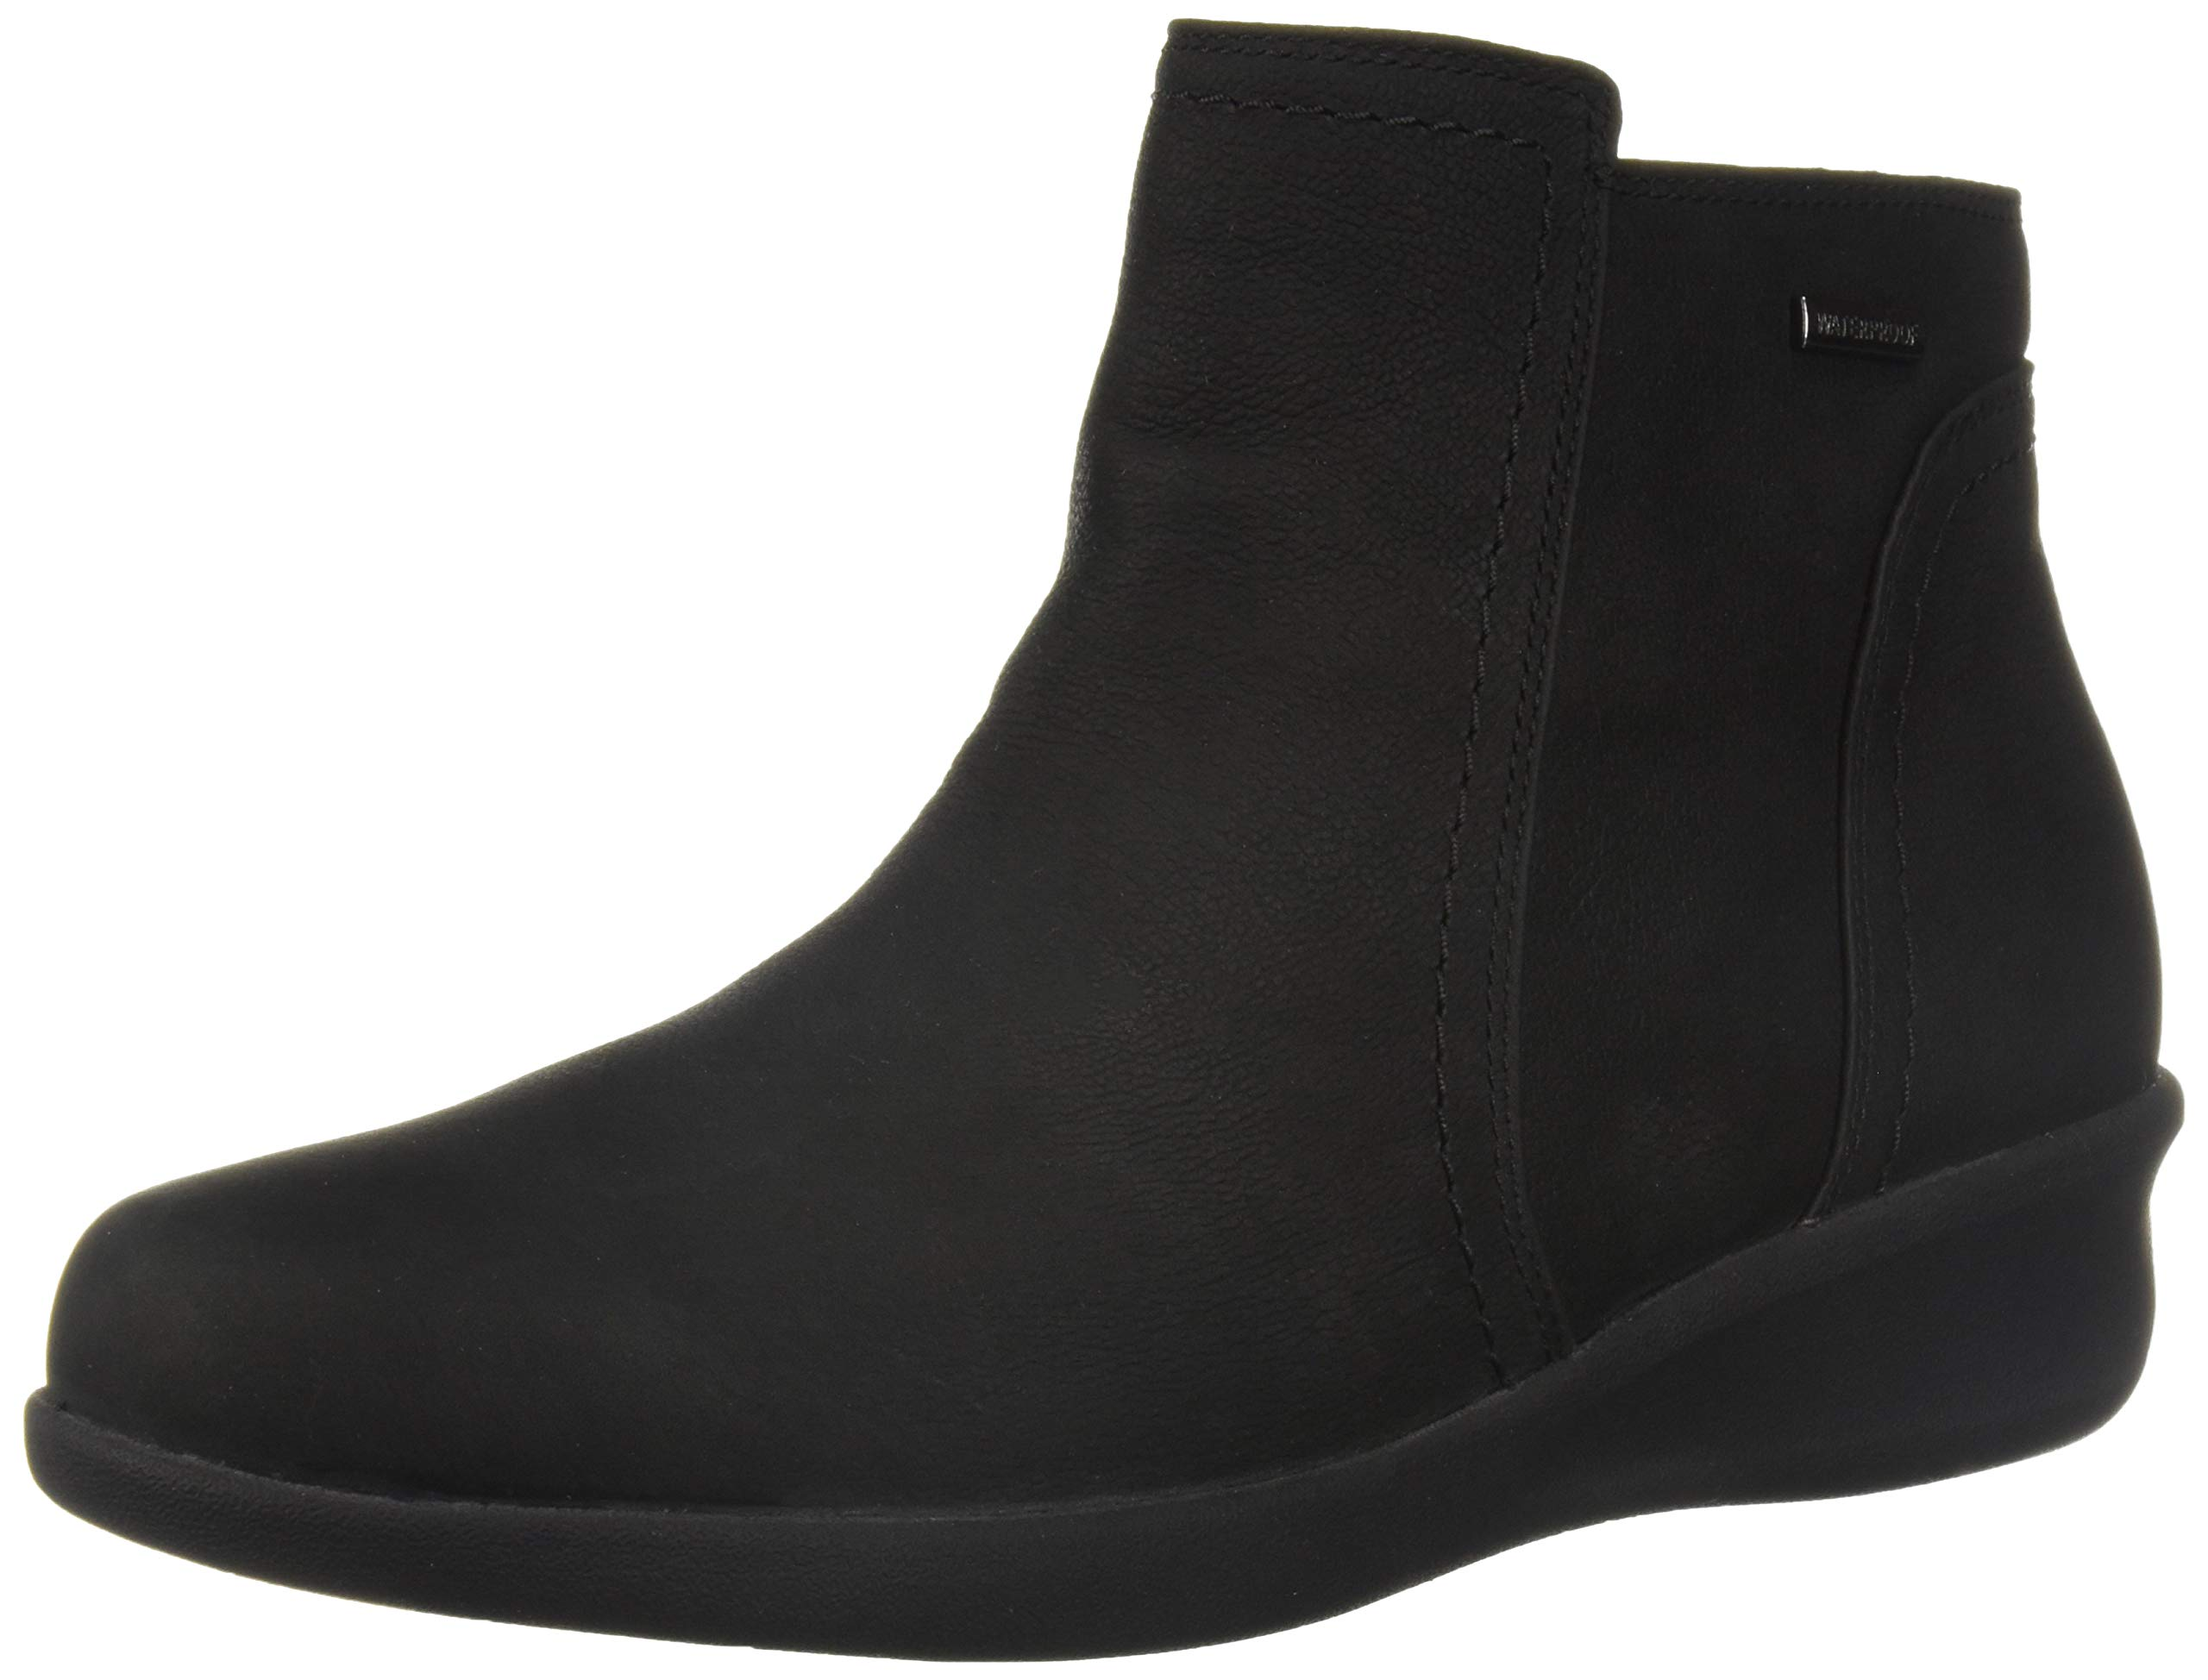 Aravon Women's Fairlee Ankle Boot, Black, 12 B US by Aravon